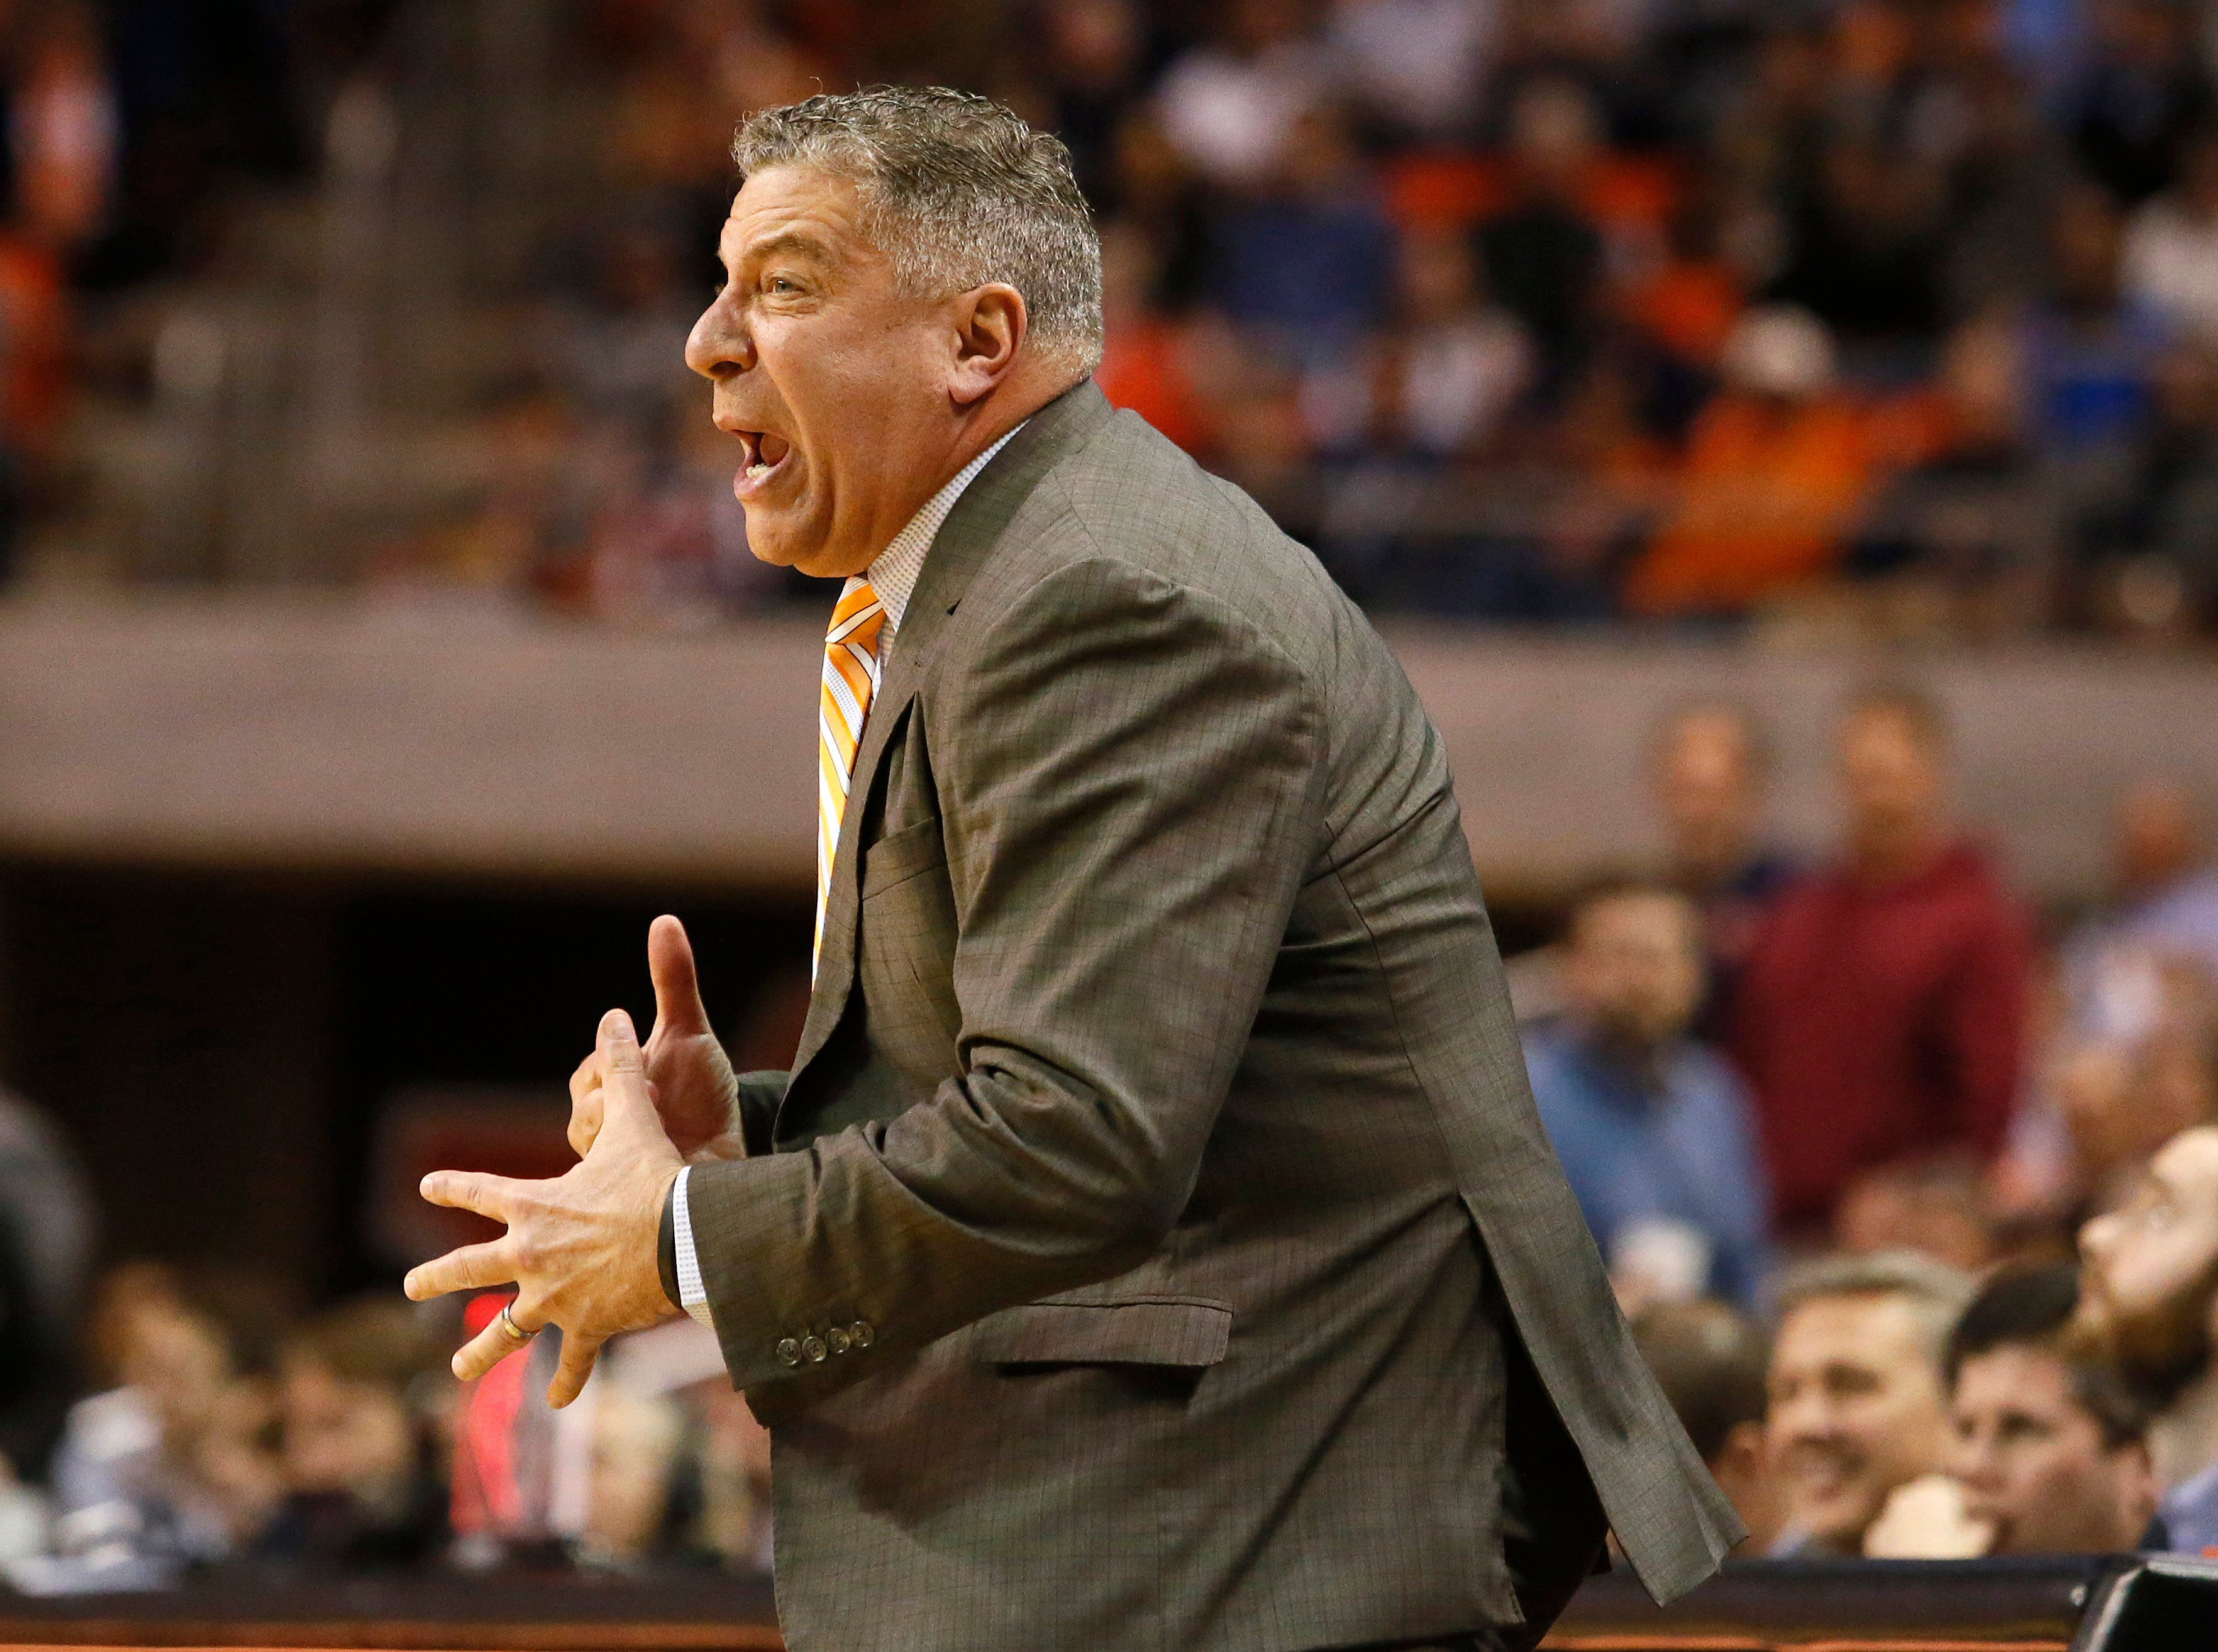 Feb 13, 2019; Auburn, AL, USA;  Auburn Tigers head coach Bruce Pearl reacts to a call during the second half against the Ole Miss Rebels at Auburn Arena. Mandatory Credit: John Reed-USA TODAY Sports